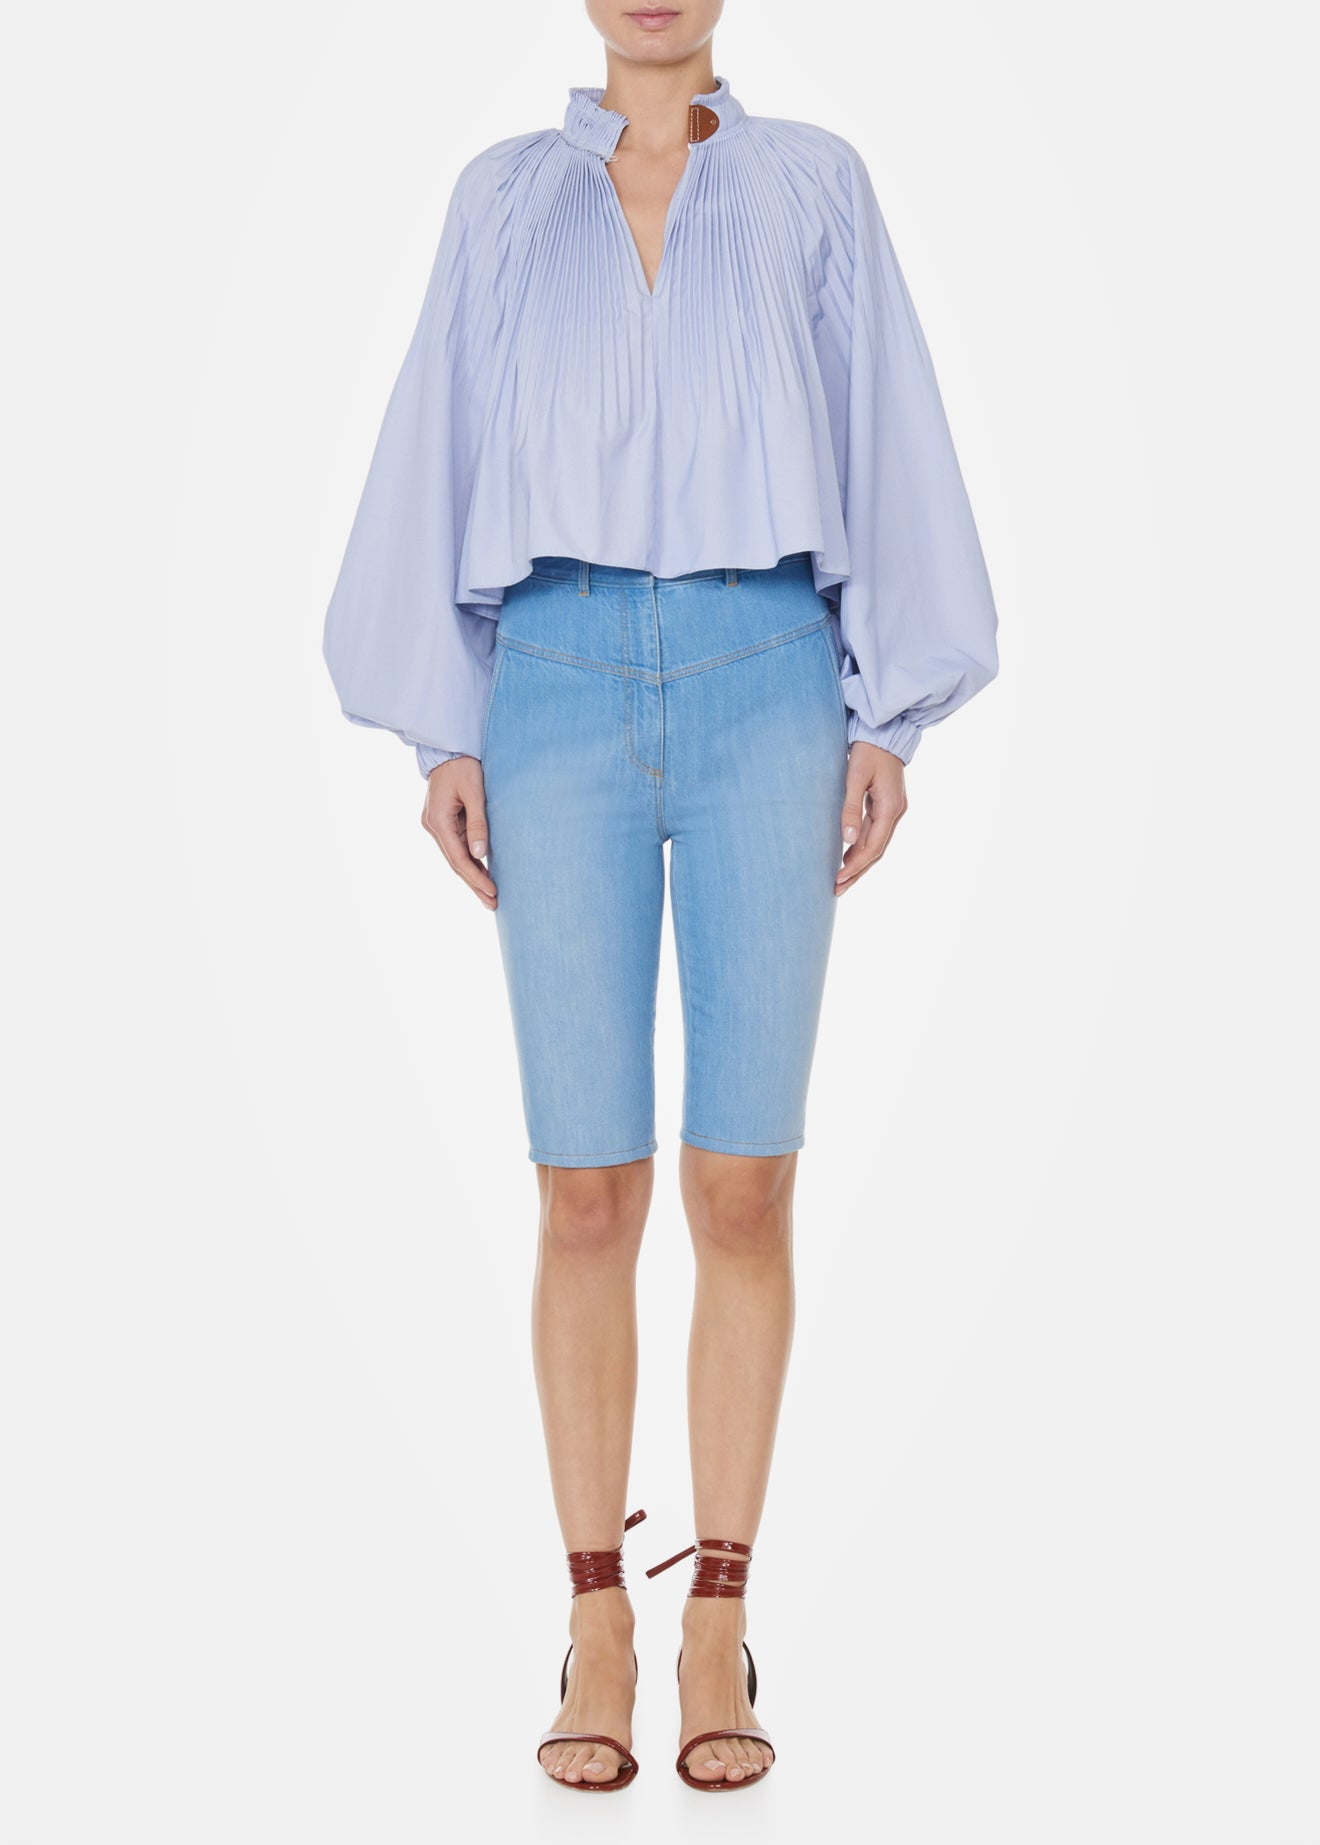 Tibi Vintage Stone Wash Trish Denim Short - Blue